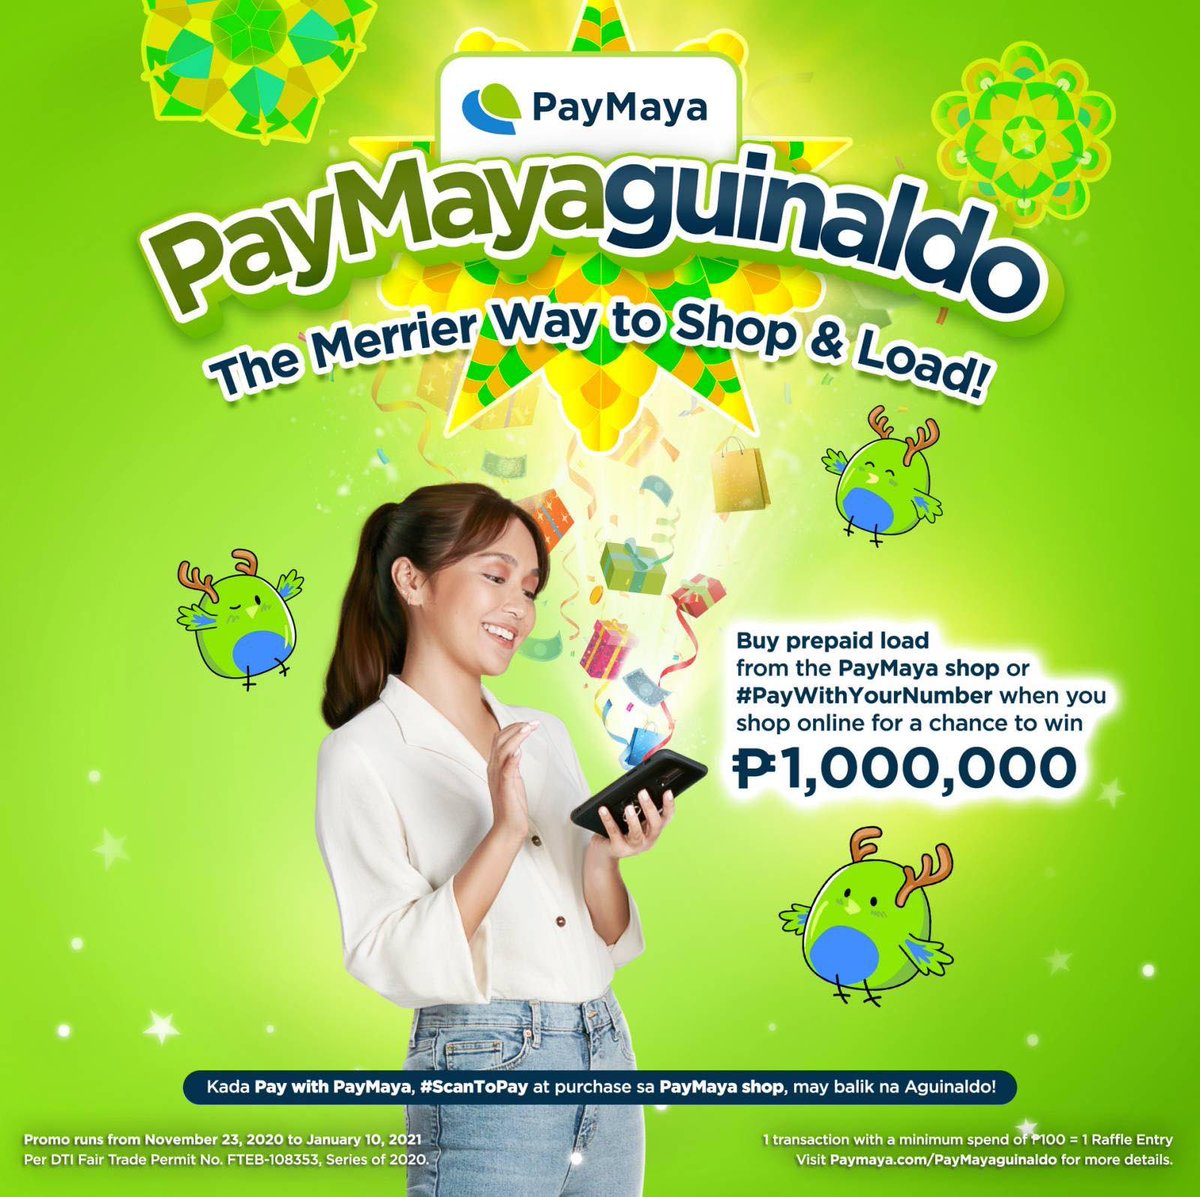 It's never too late to greet and send gifts this Christmas! With @paymayaofficial, mag-load for yourself and for your loved ones from the PayMaya shop or #PayWithYourNumber for your online orders for a chance to be an instant millionaire in the grand draw.   #DontPayCashPayMaya